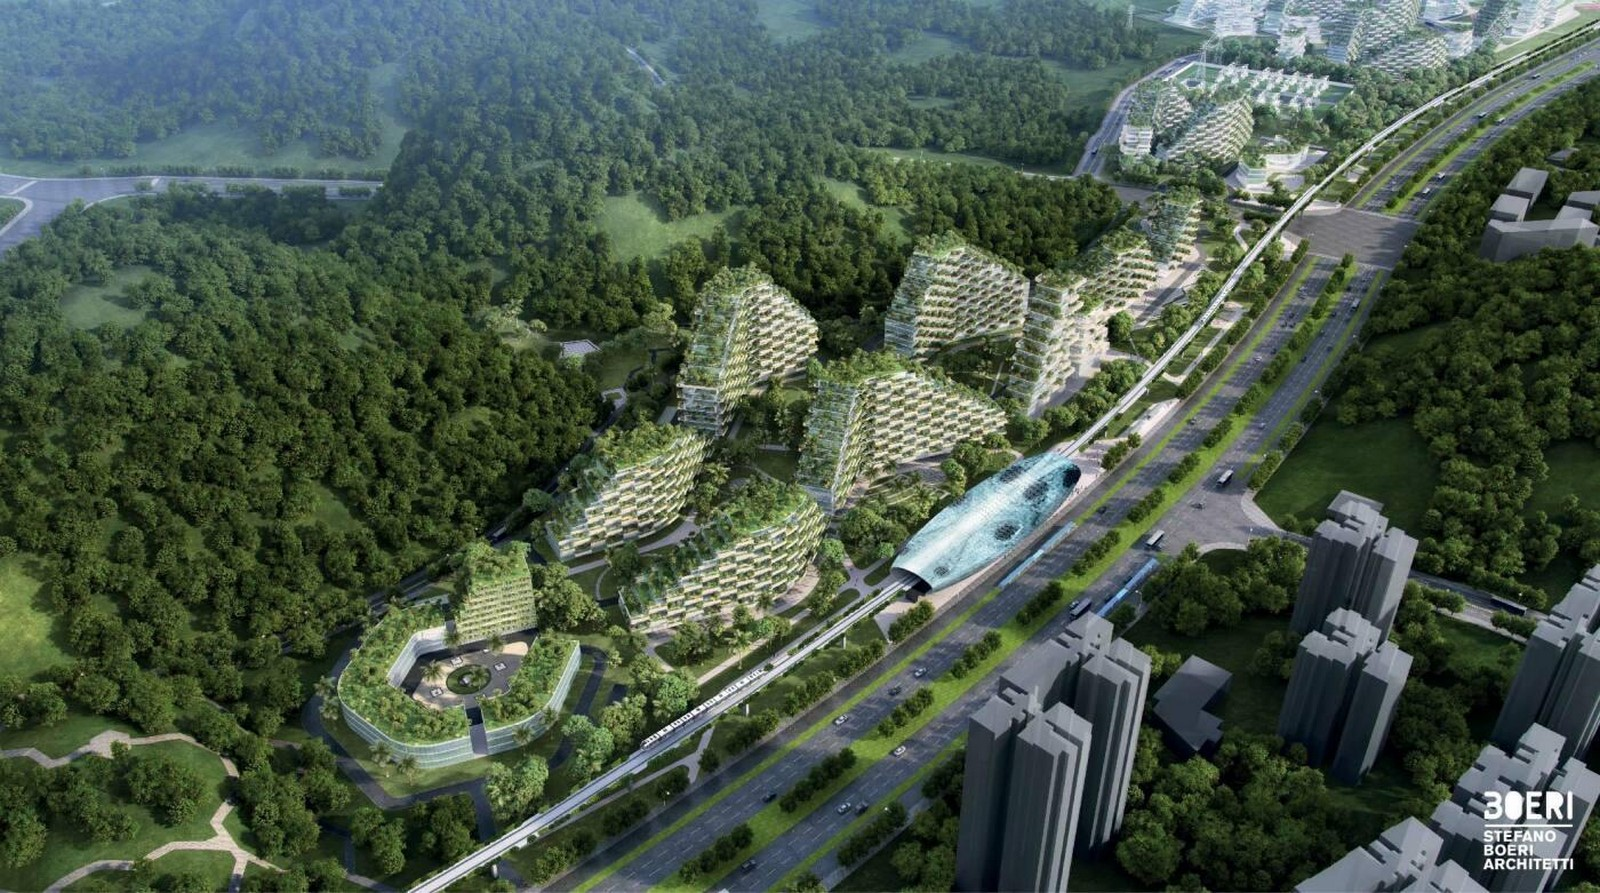 Architecture of China: Is it really Sustainable? - Sheet2